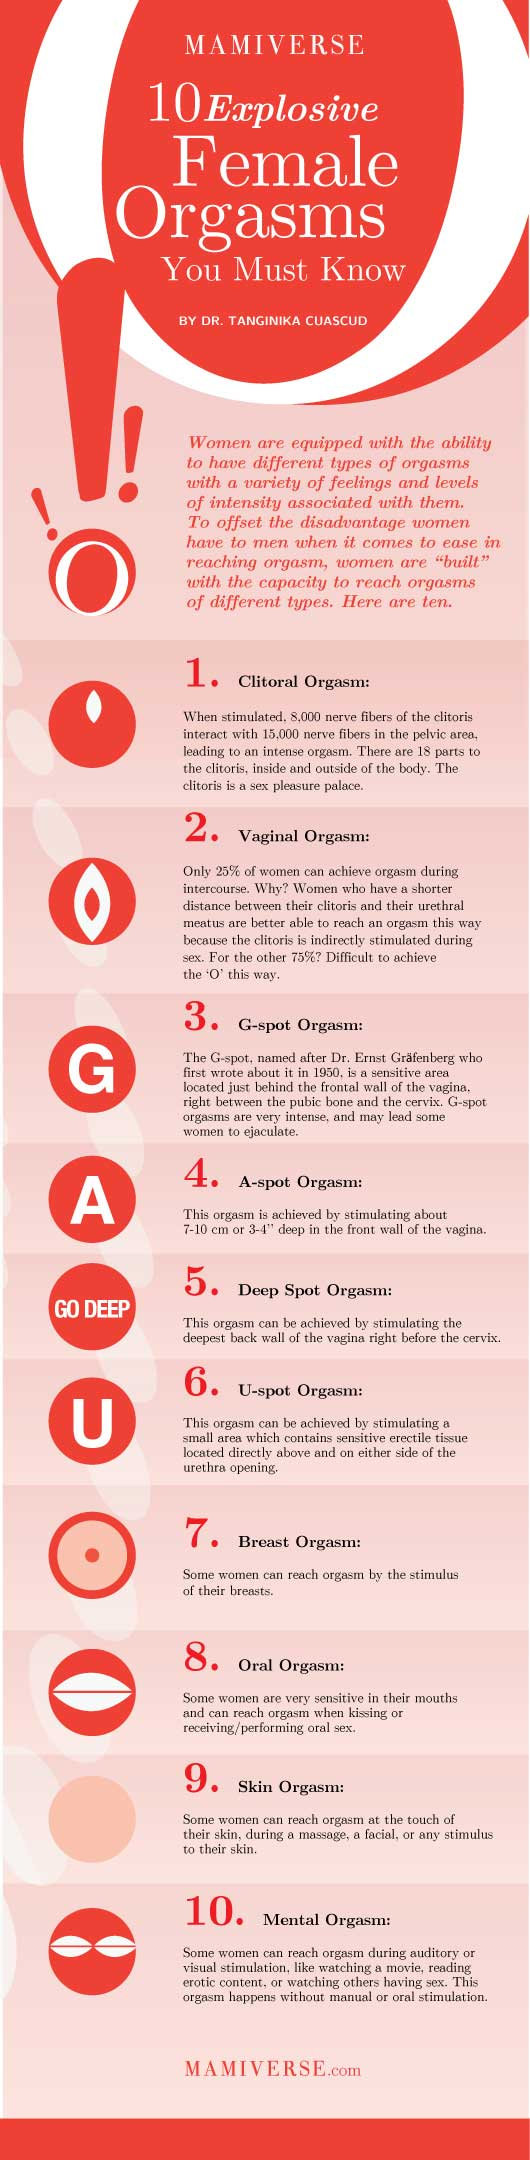 10 Explosive Female Orgasm Types (Must-Know Info!)